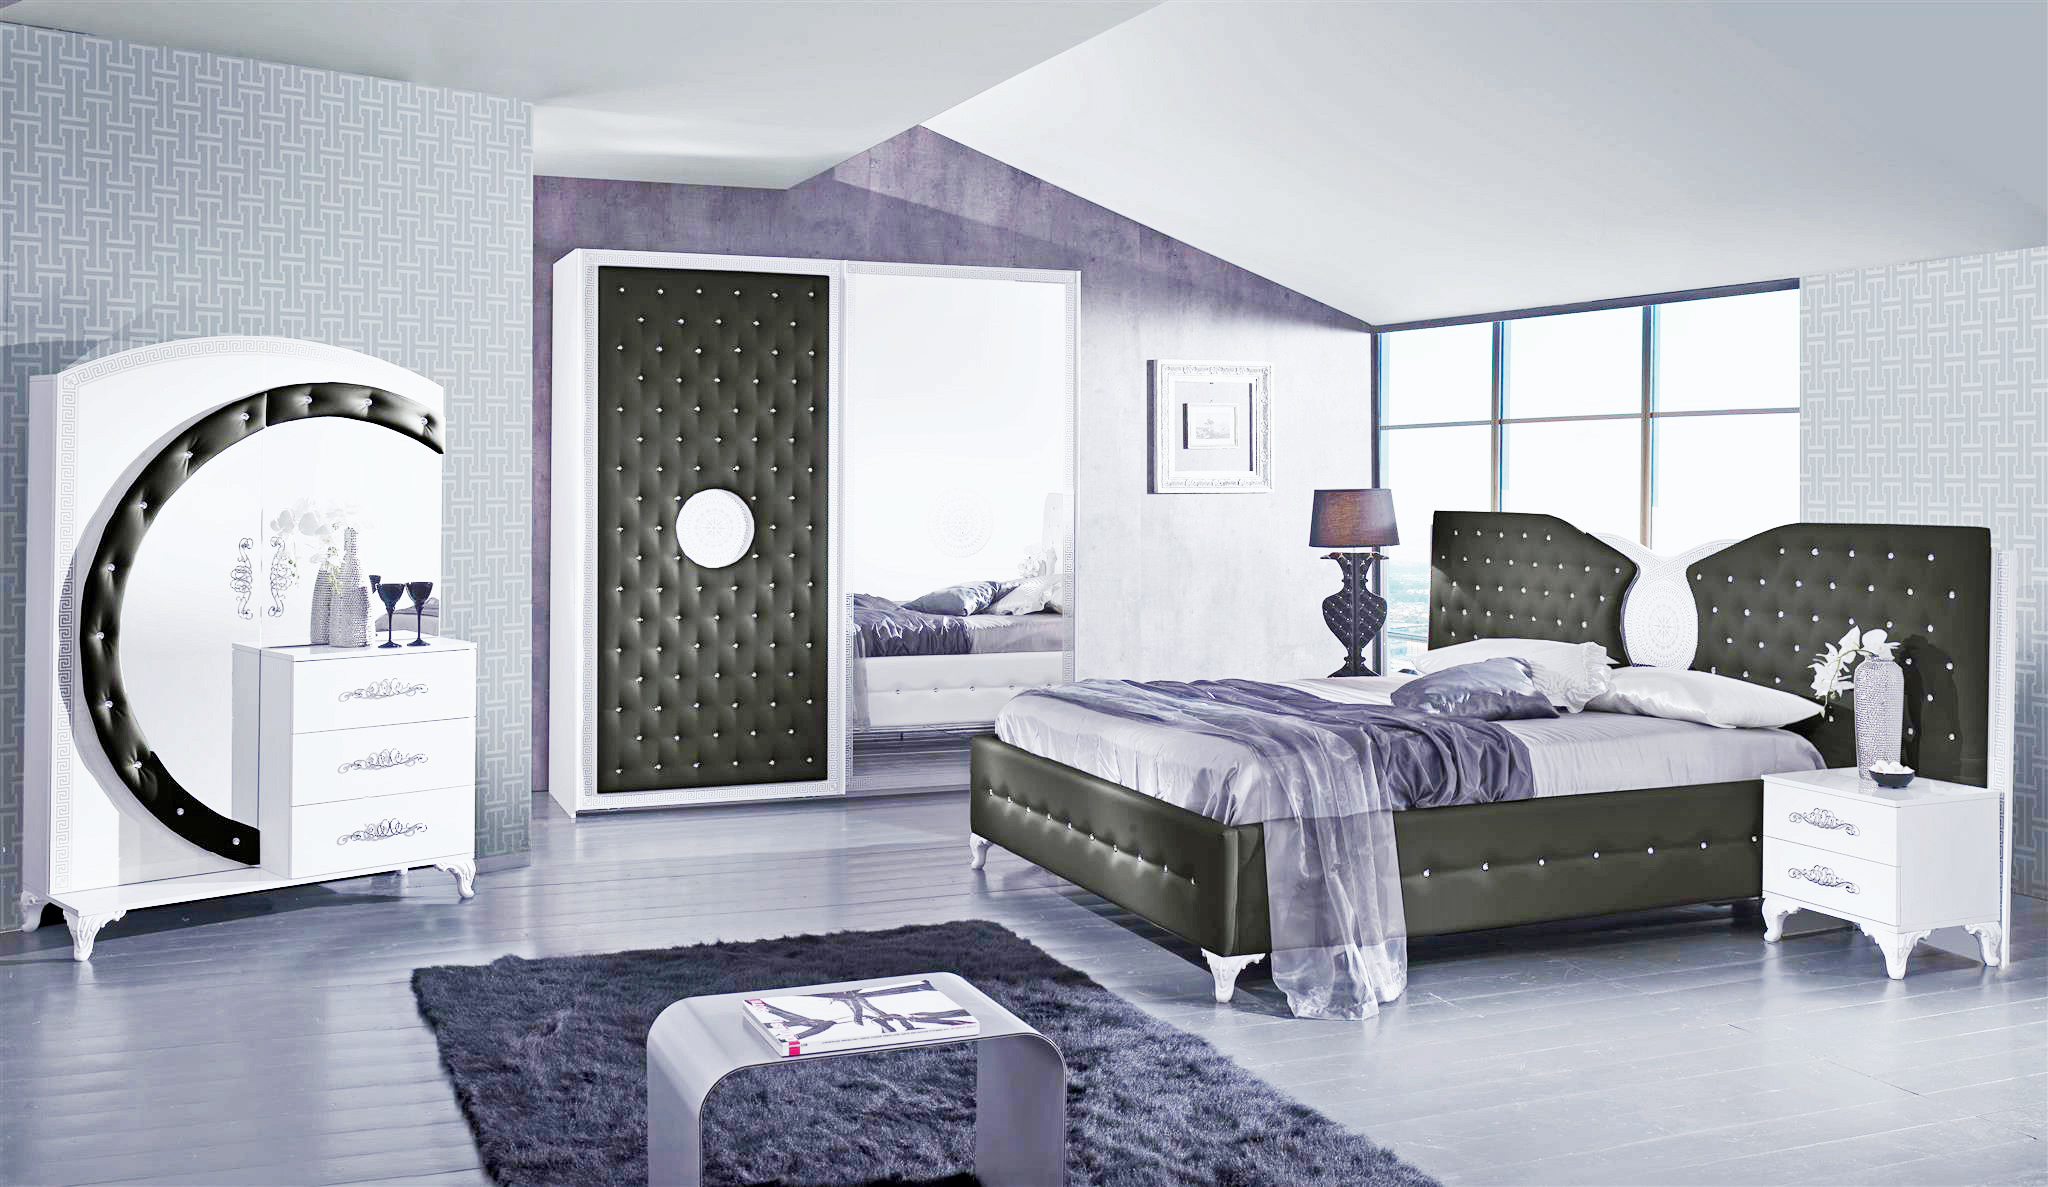 sch ne kommode mit spiegel g nstige kommode. Black Bedroom Furniture Sets. Home Design Ideas